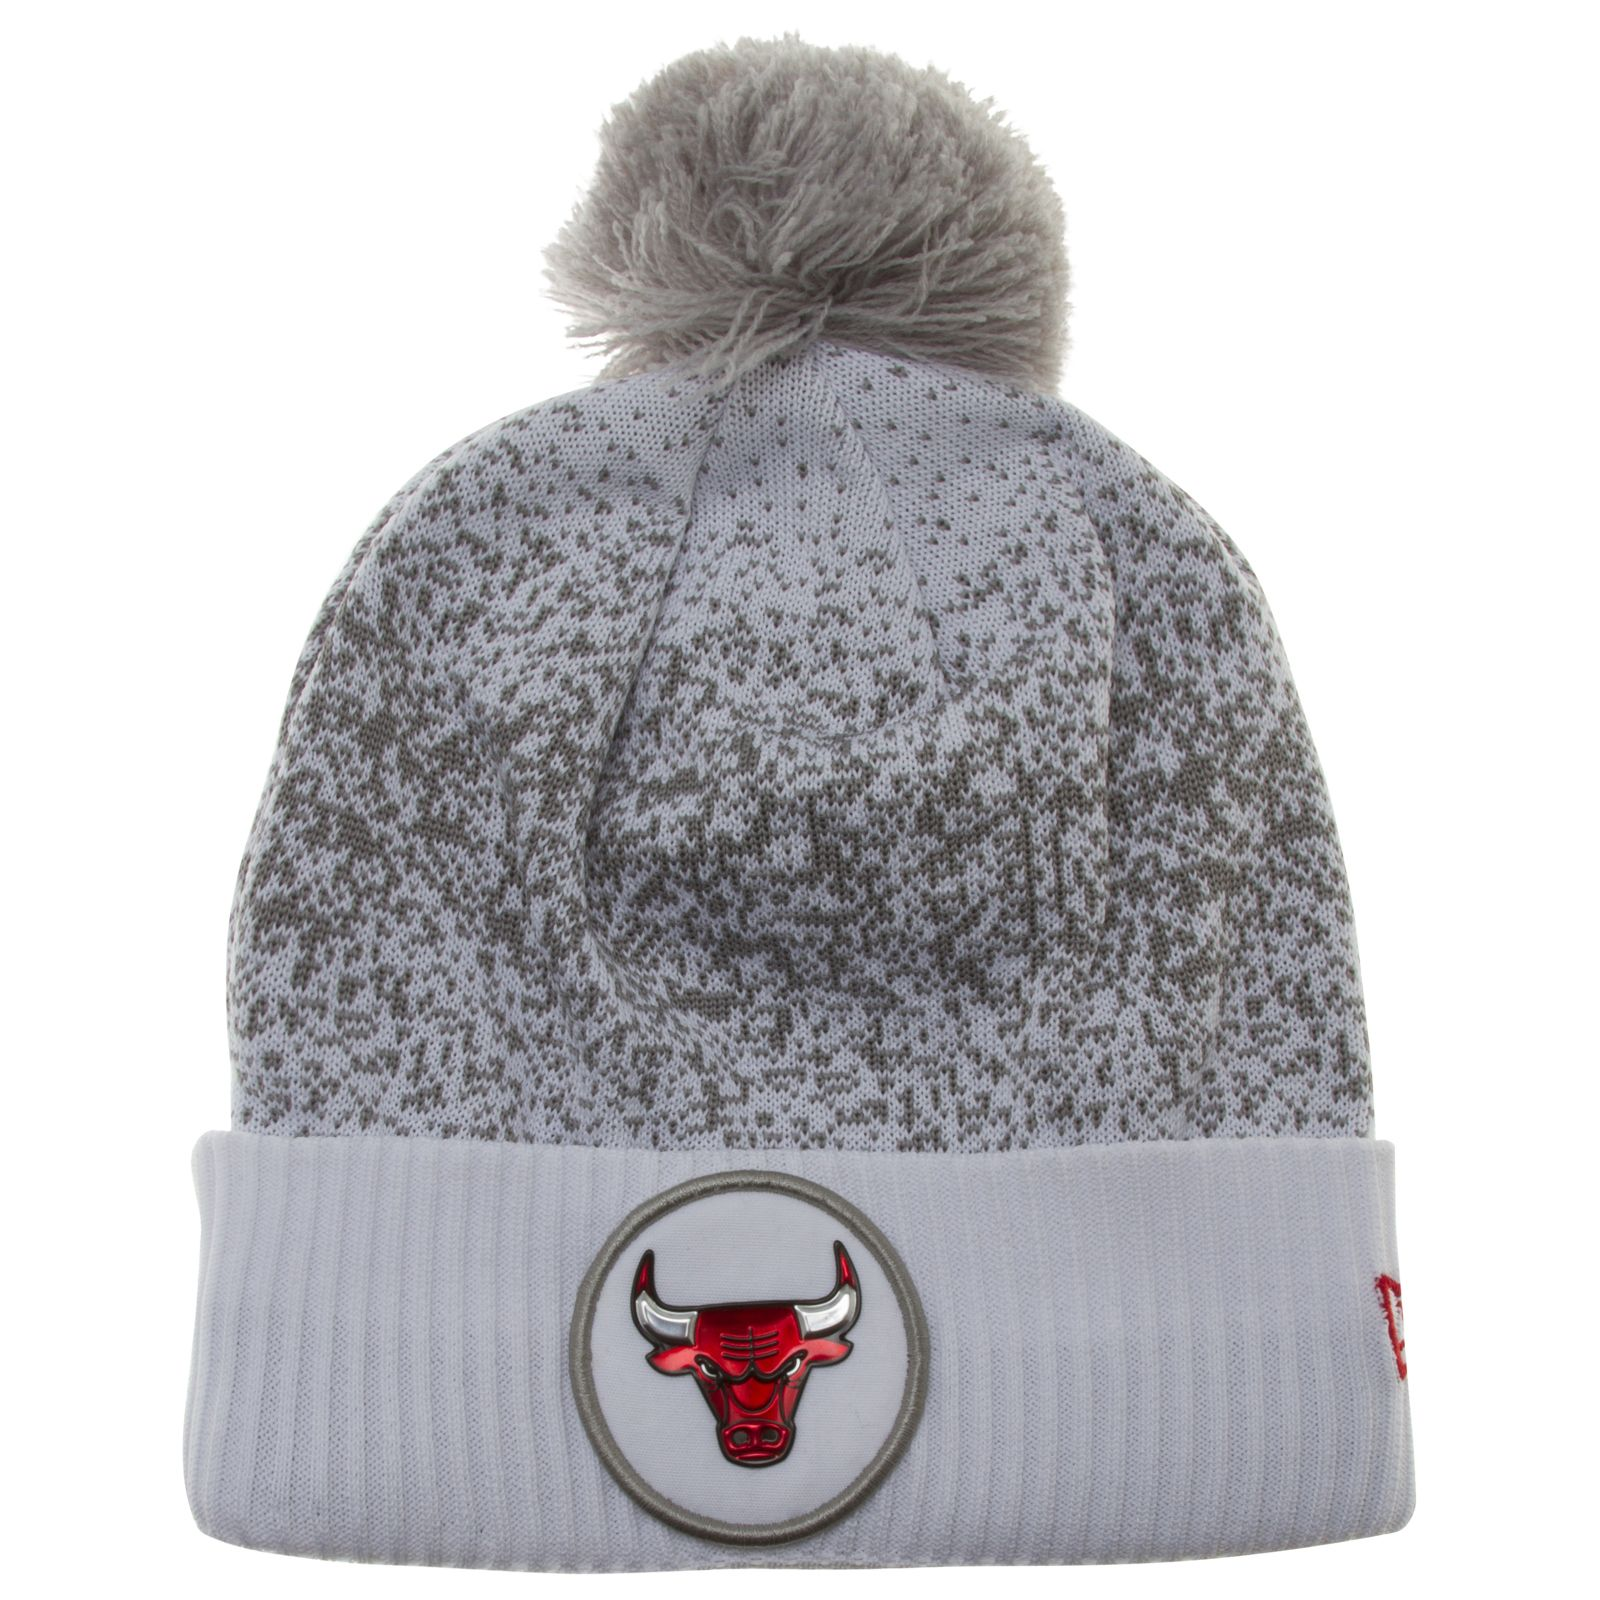 best service 4f45c f9665 Chicago Bulls White and Grey Flecked Medallion Logo Cuff Pom Knit Hat by New  Era  Chicago  Bulls  ChicagoBulls  MichaelJordan